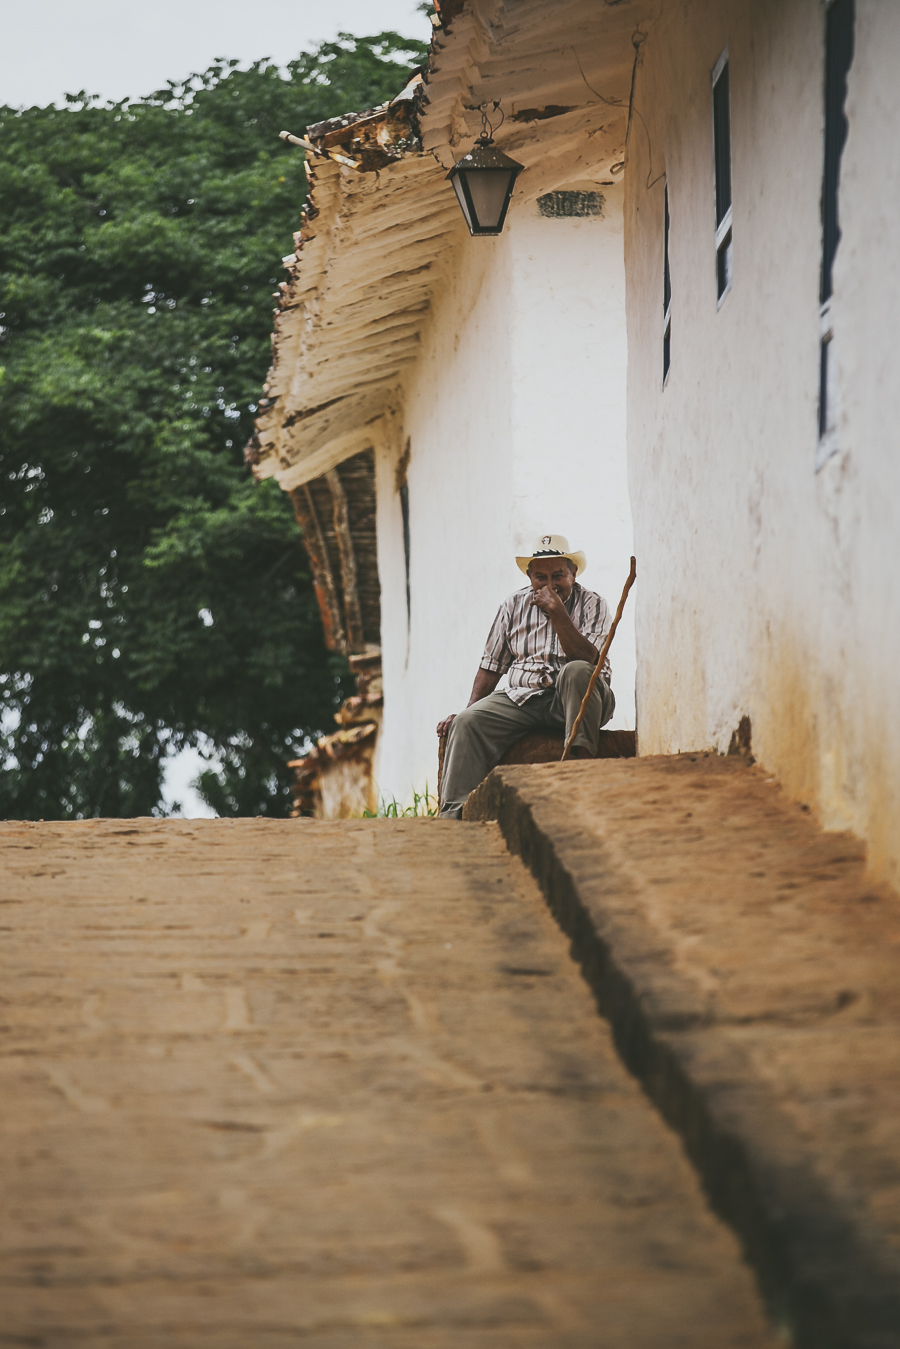 Man on sidewalk, Barichara streets. Colombia.